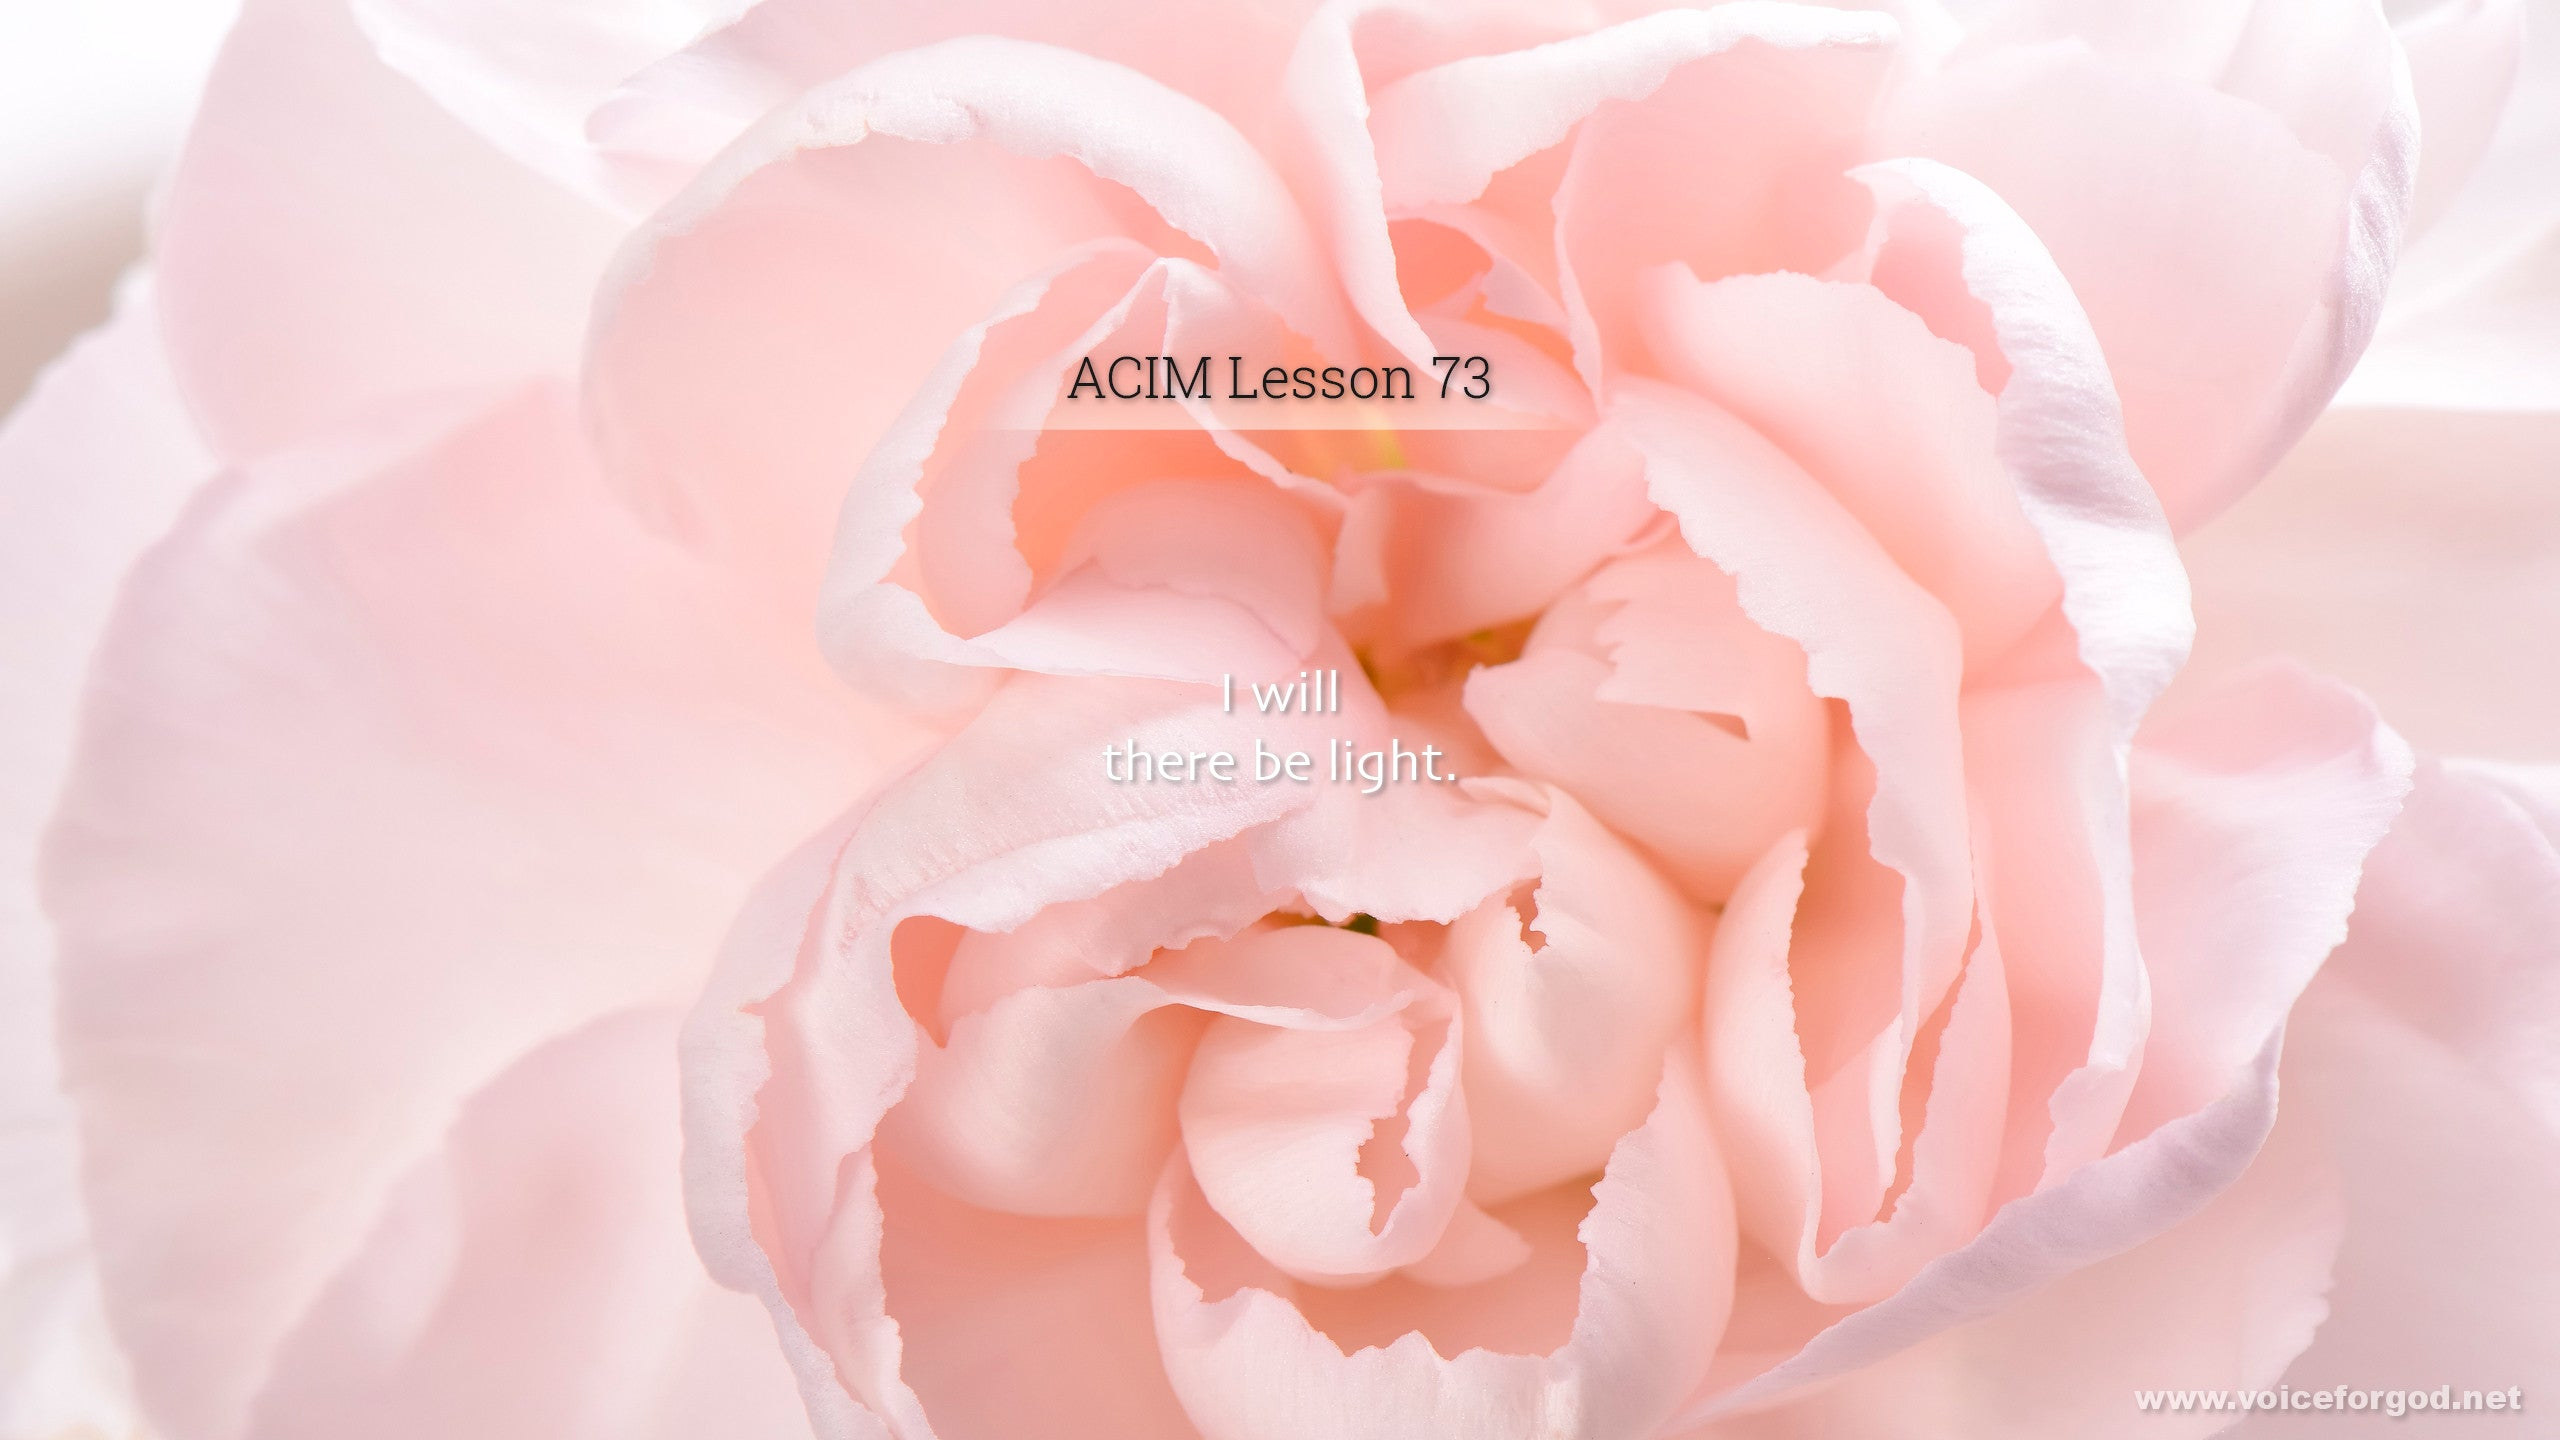 ACIM Lesson 73 - A Course in Miracles Workbook Lesson 73